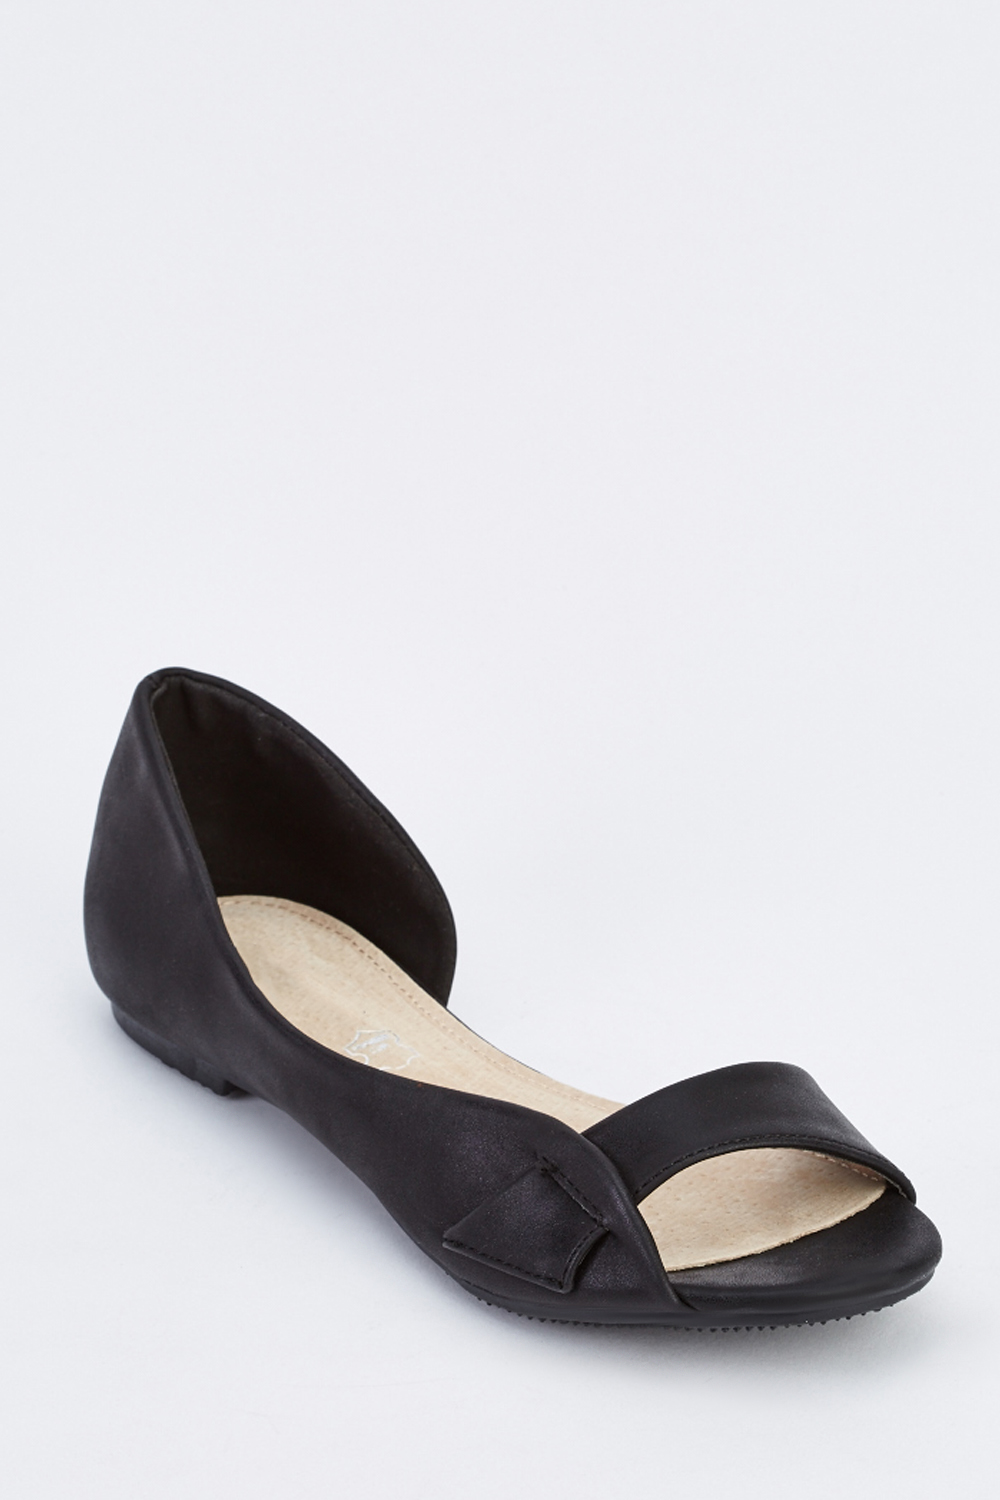 Cut Out Open Toe Flat Shoes - Just $6